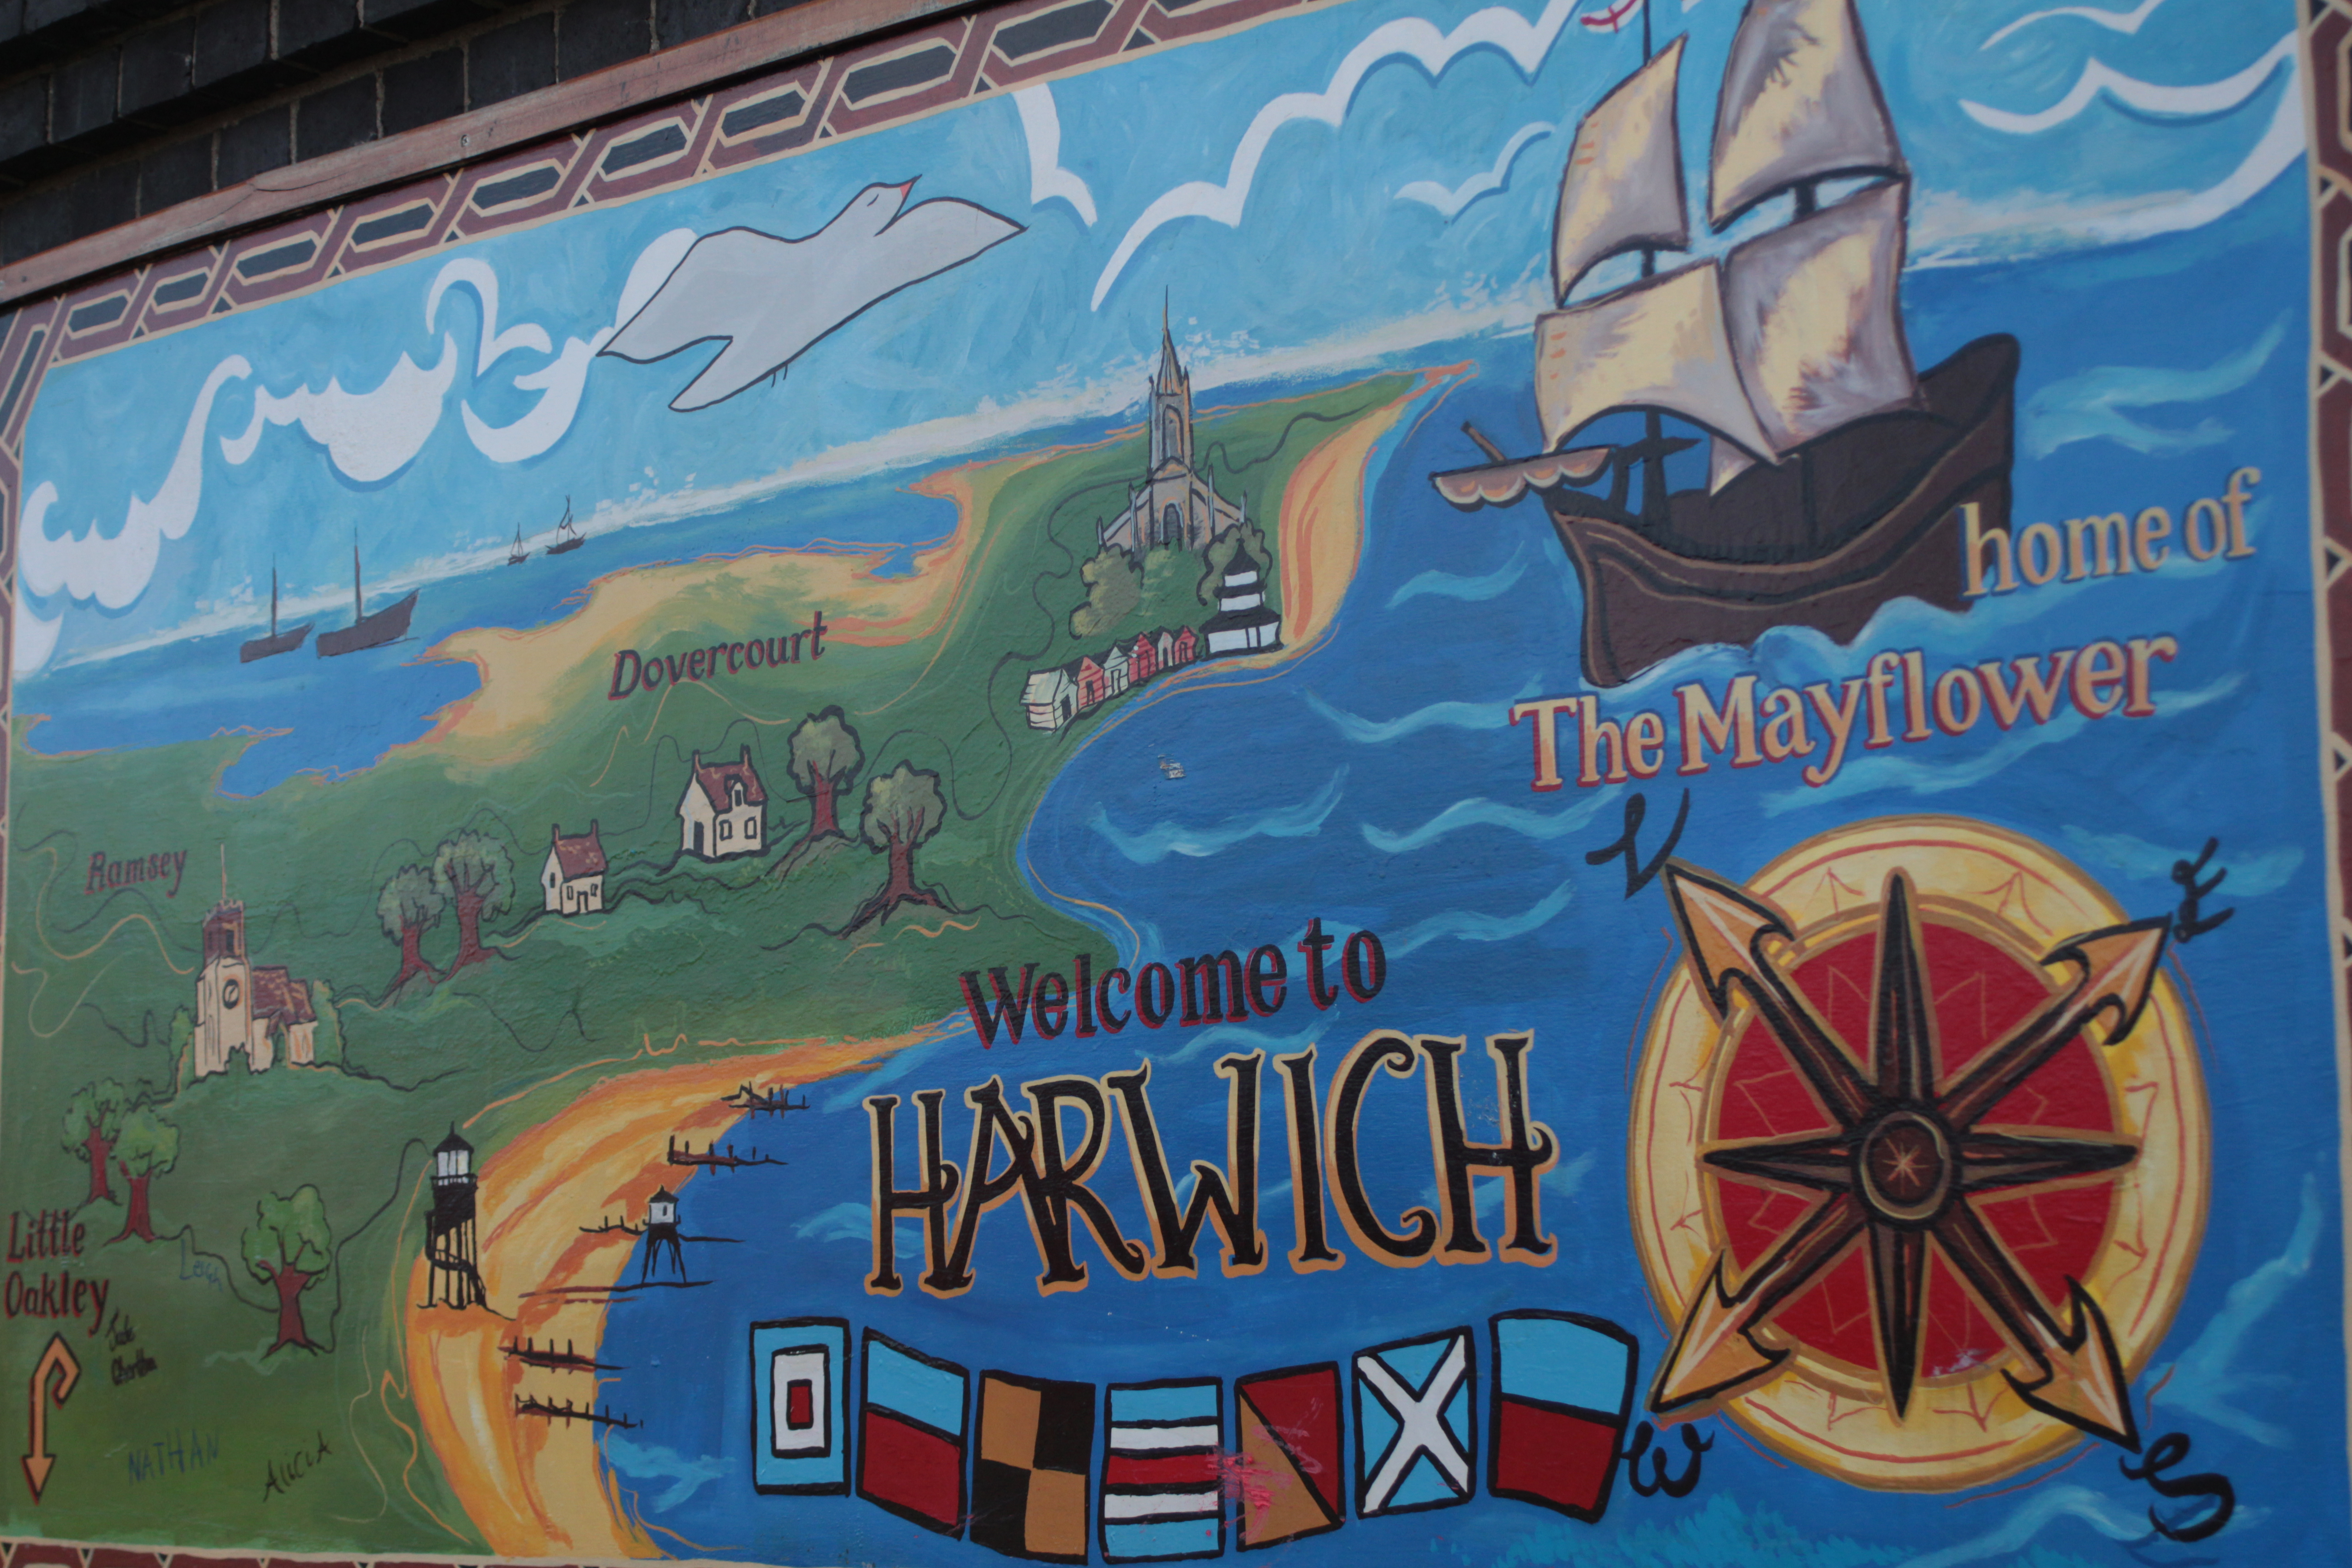 Welcome to Harwich mural, Harwich